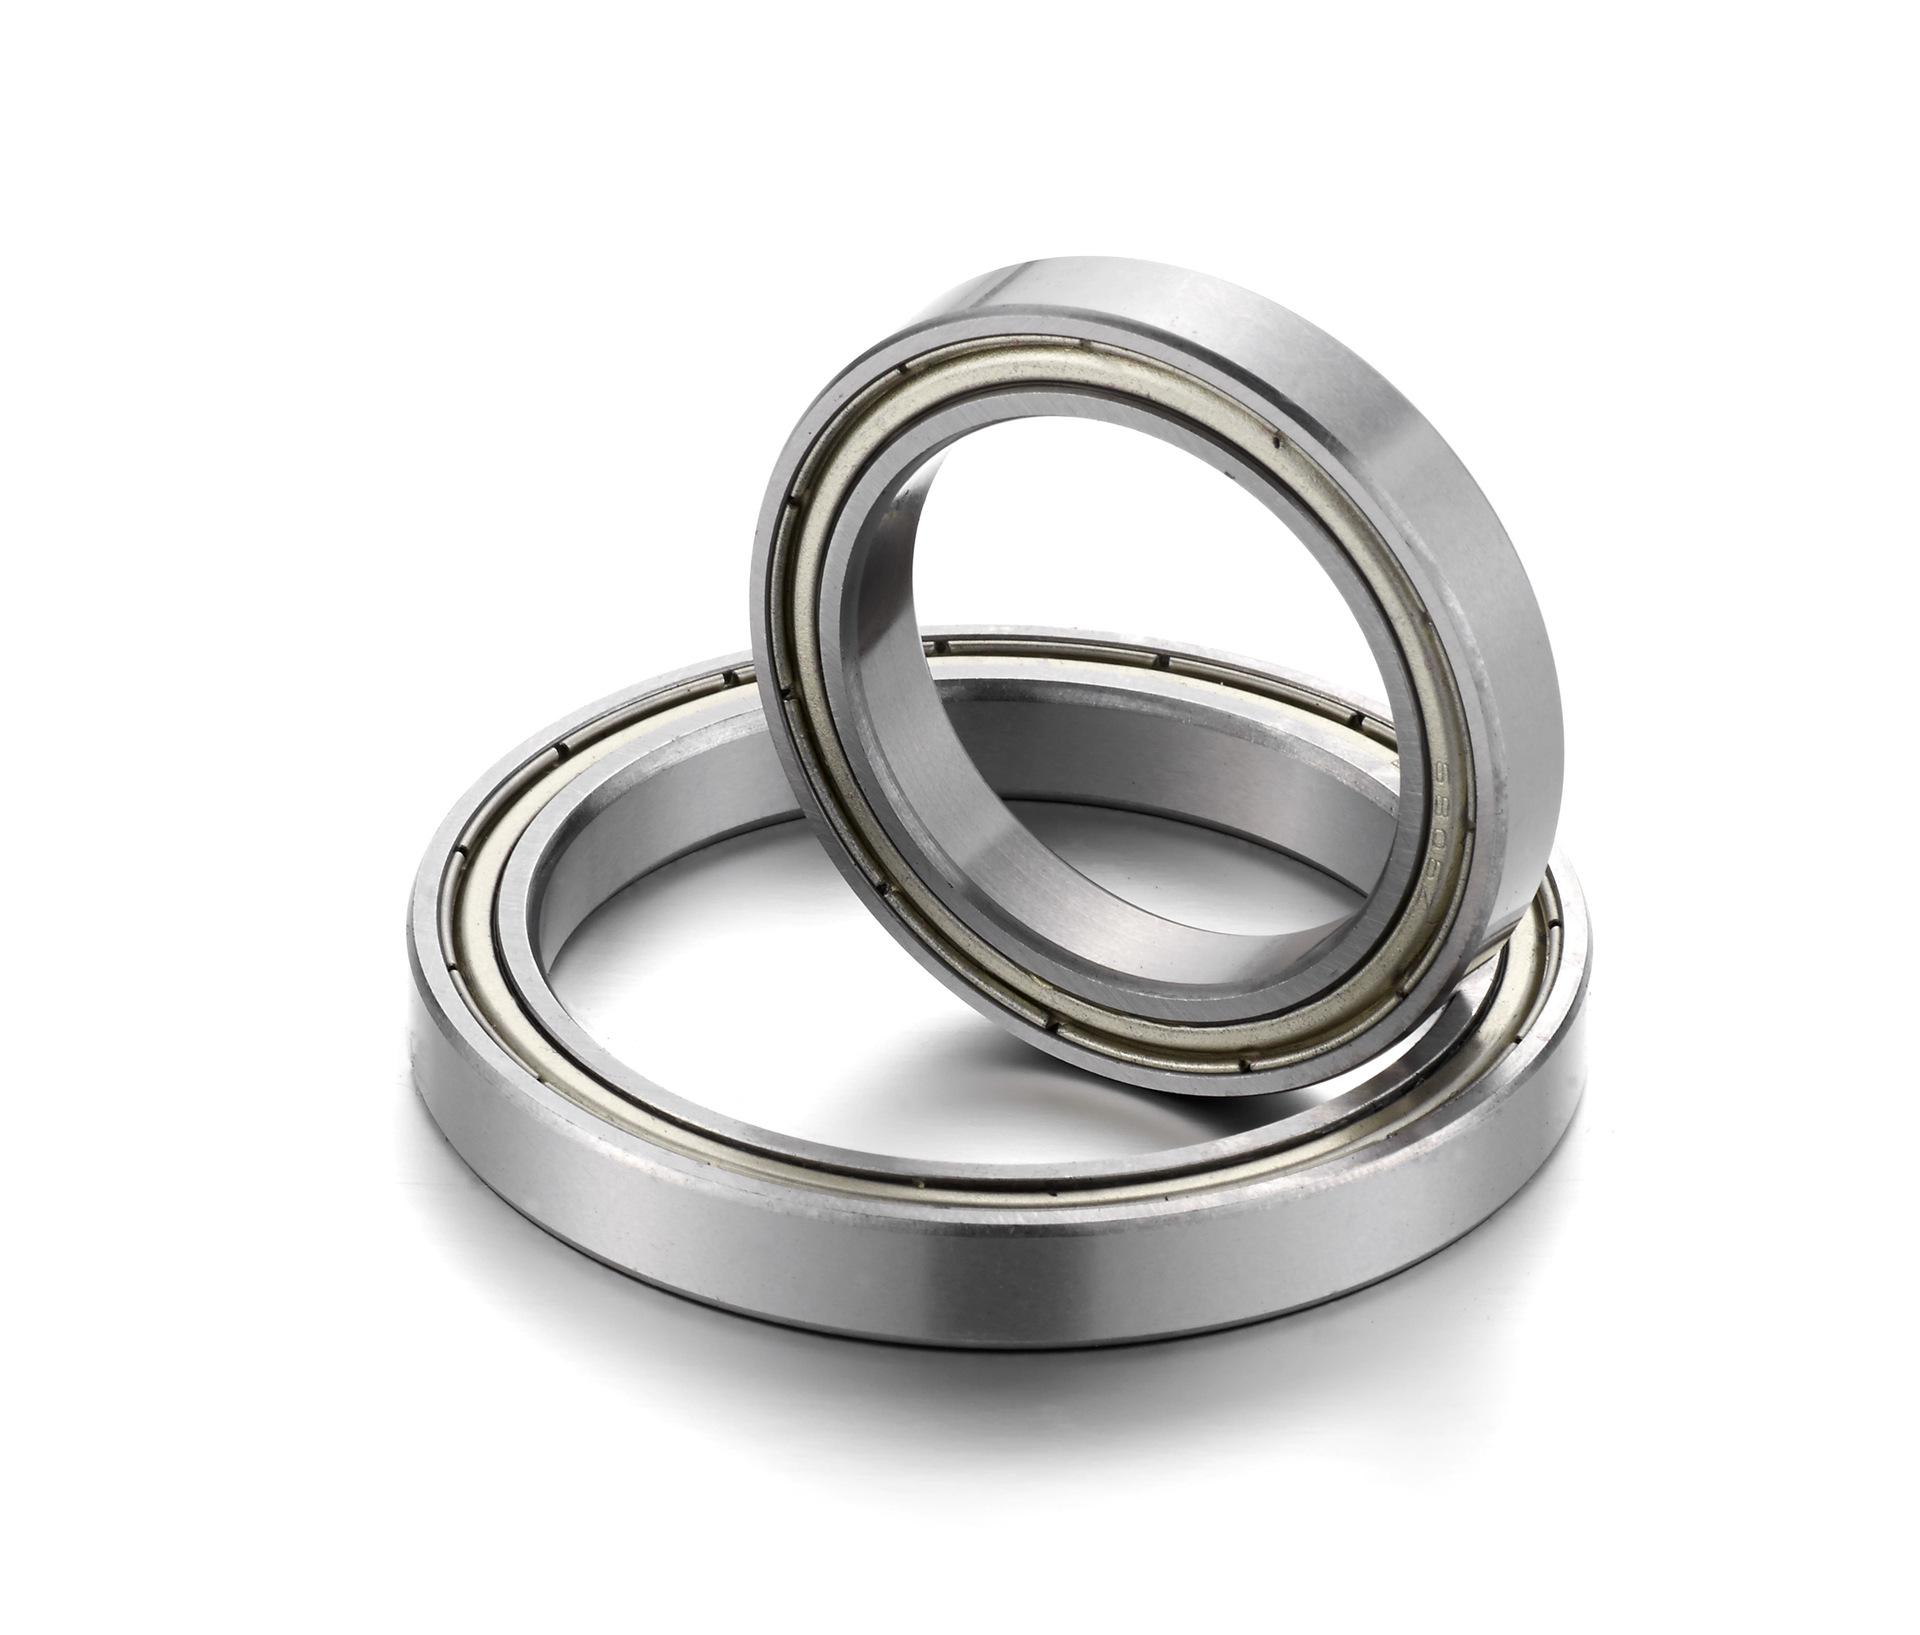 6828M  ABEC-1 140x175x18MM Metric Thin Section Bearings 61828M brass cage6828M  ABEC-1 140x175x18MM Metric Thin Section Bearings 61828M brass cage